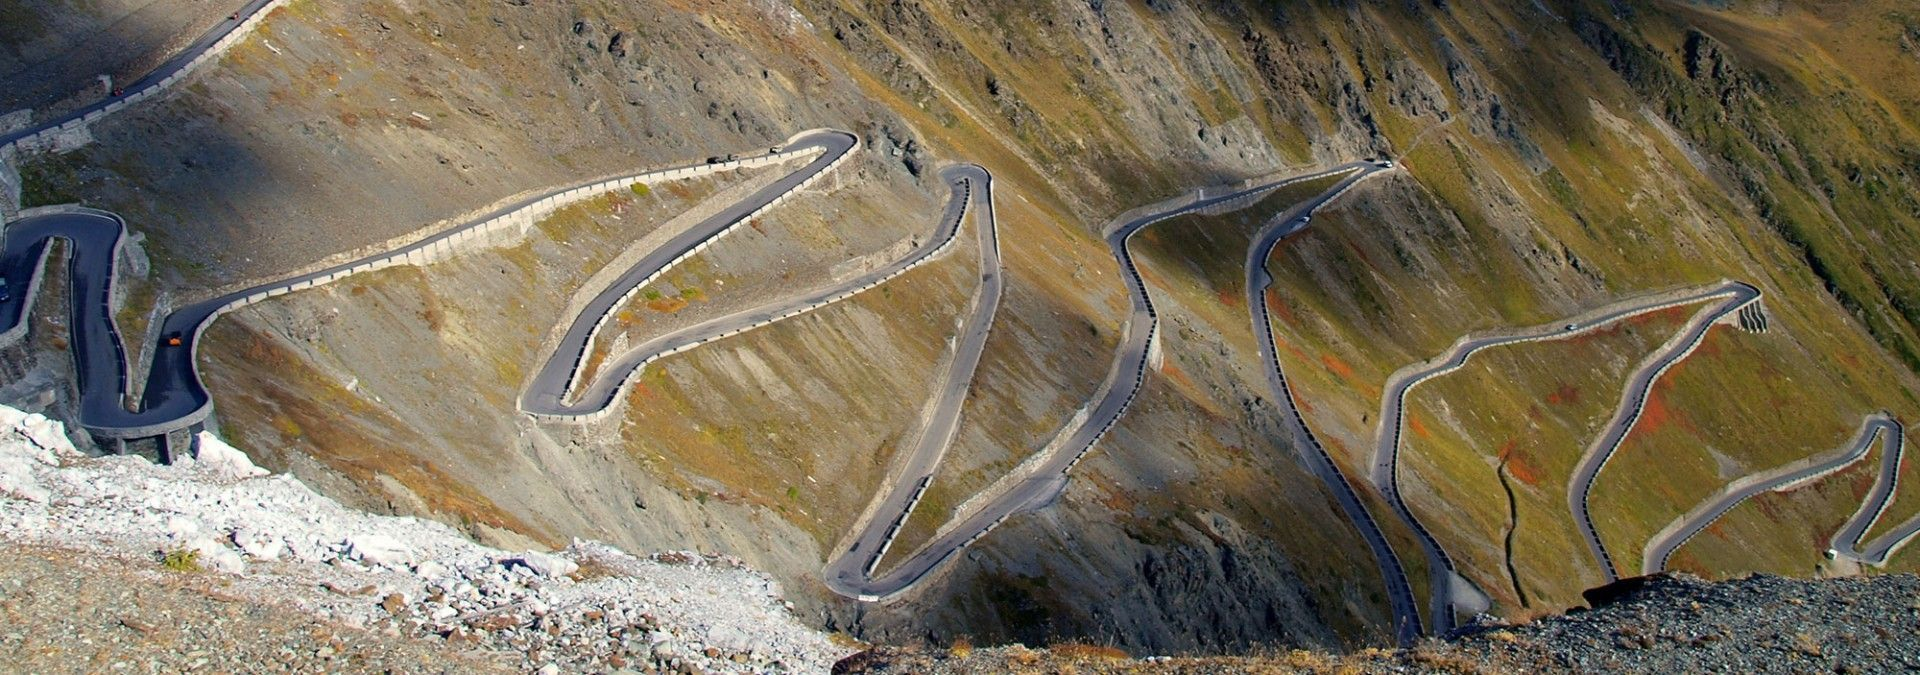 The_serpentine_roads_of_the_Passo_dello_Stelvio.jpg